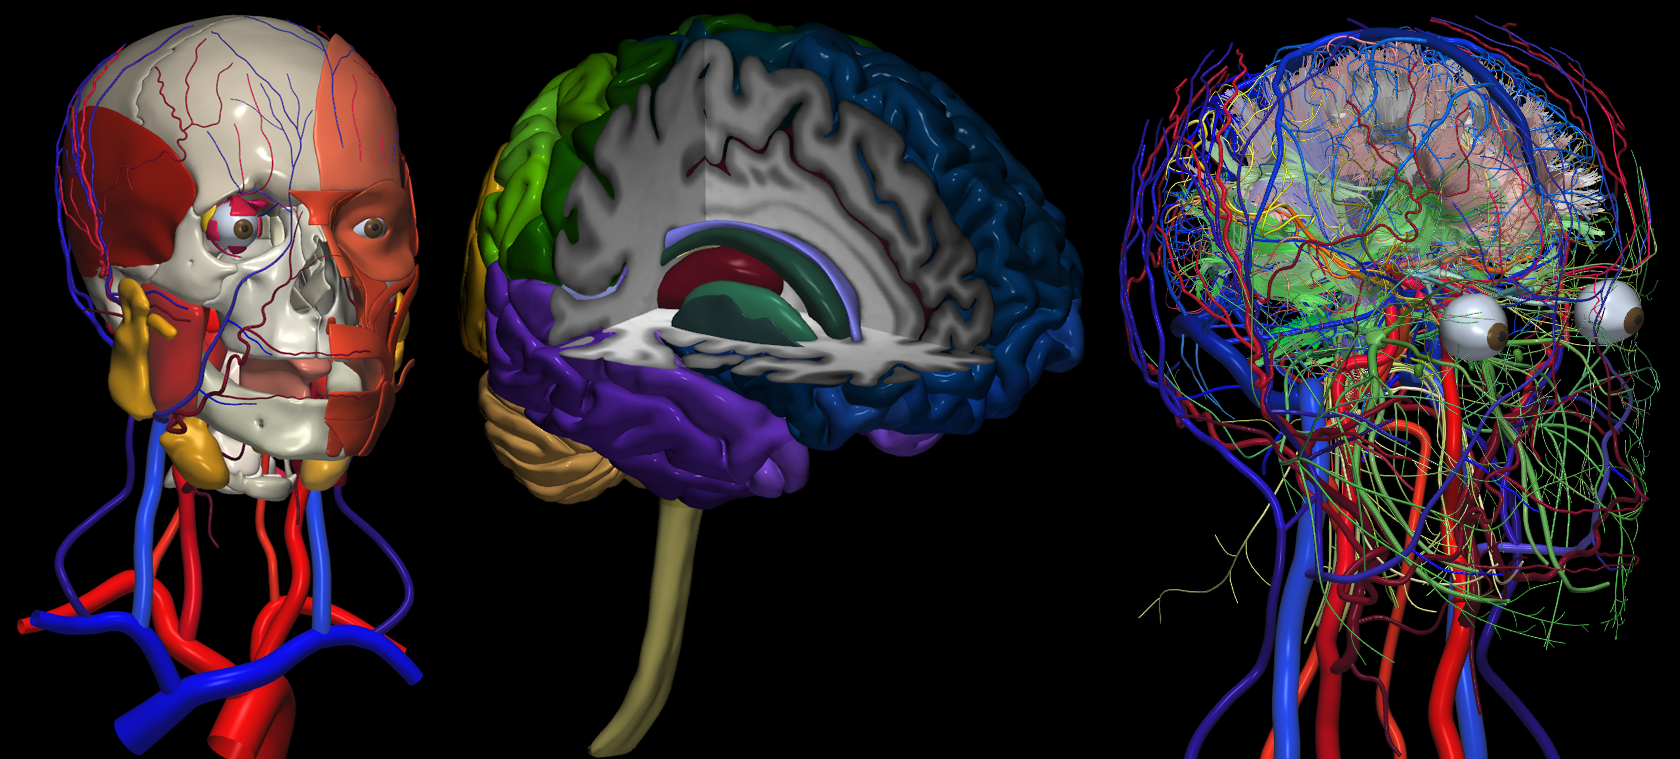 an overview of the human brain Overview of the brain (slide set) our brains provide the integrative power underlying the complex behavior of all vertebrates it is the control center for thought and creativity, as well as automatic functions of the body the human brain.